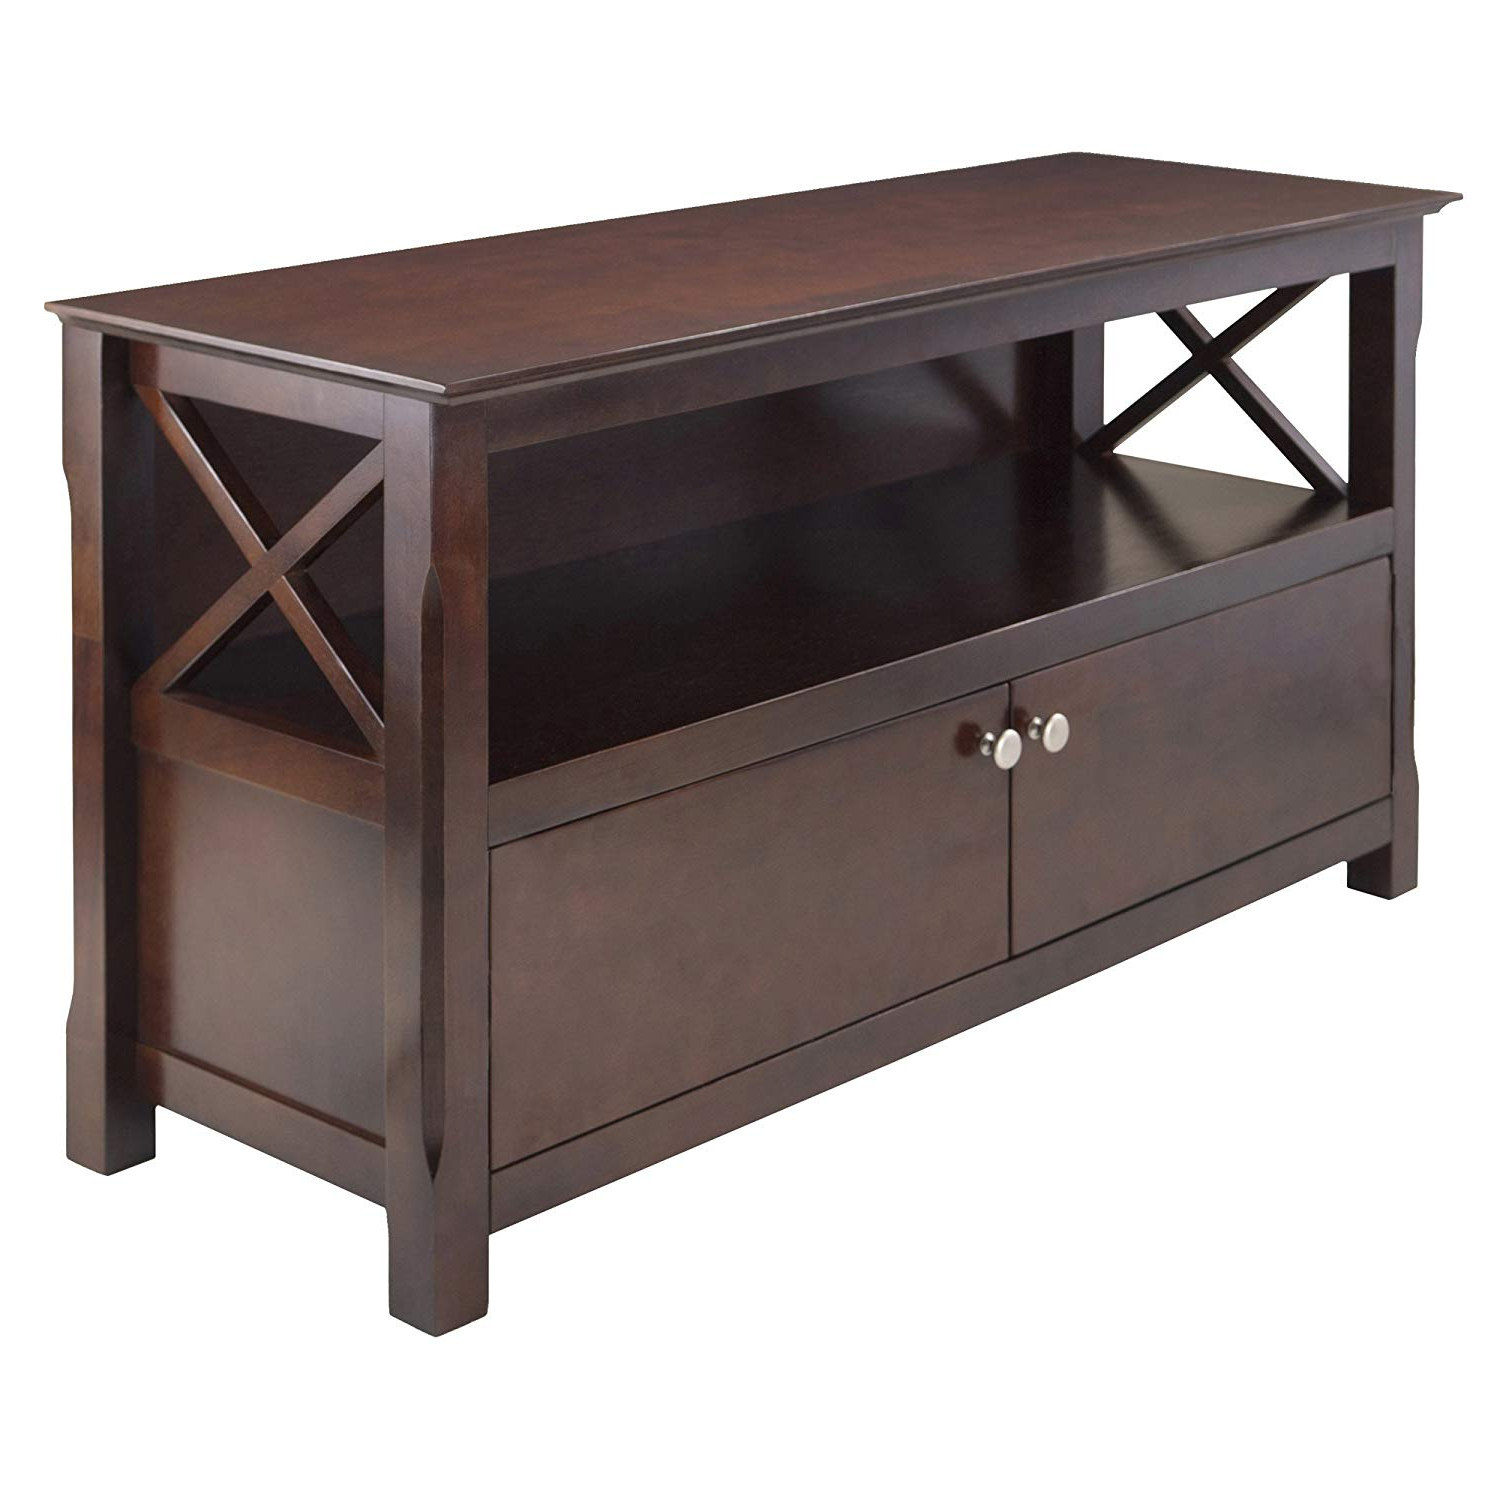 Most Popular Amazon: Winsome Wood Xola Tv Stand: Kitchen & Dining Throughout Wide Tv Cabinets (View 3 of 20)